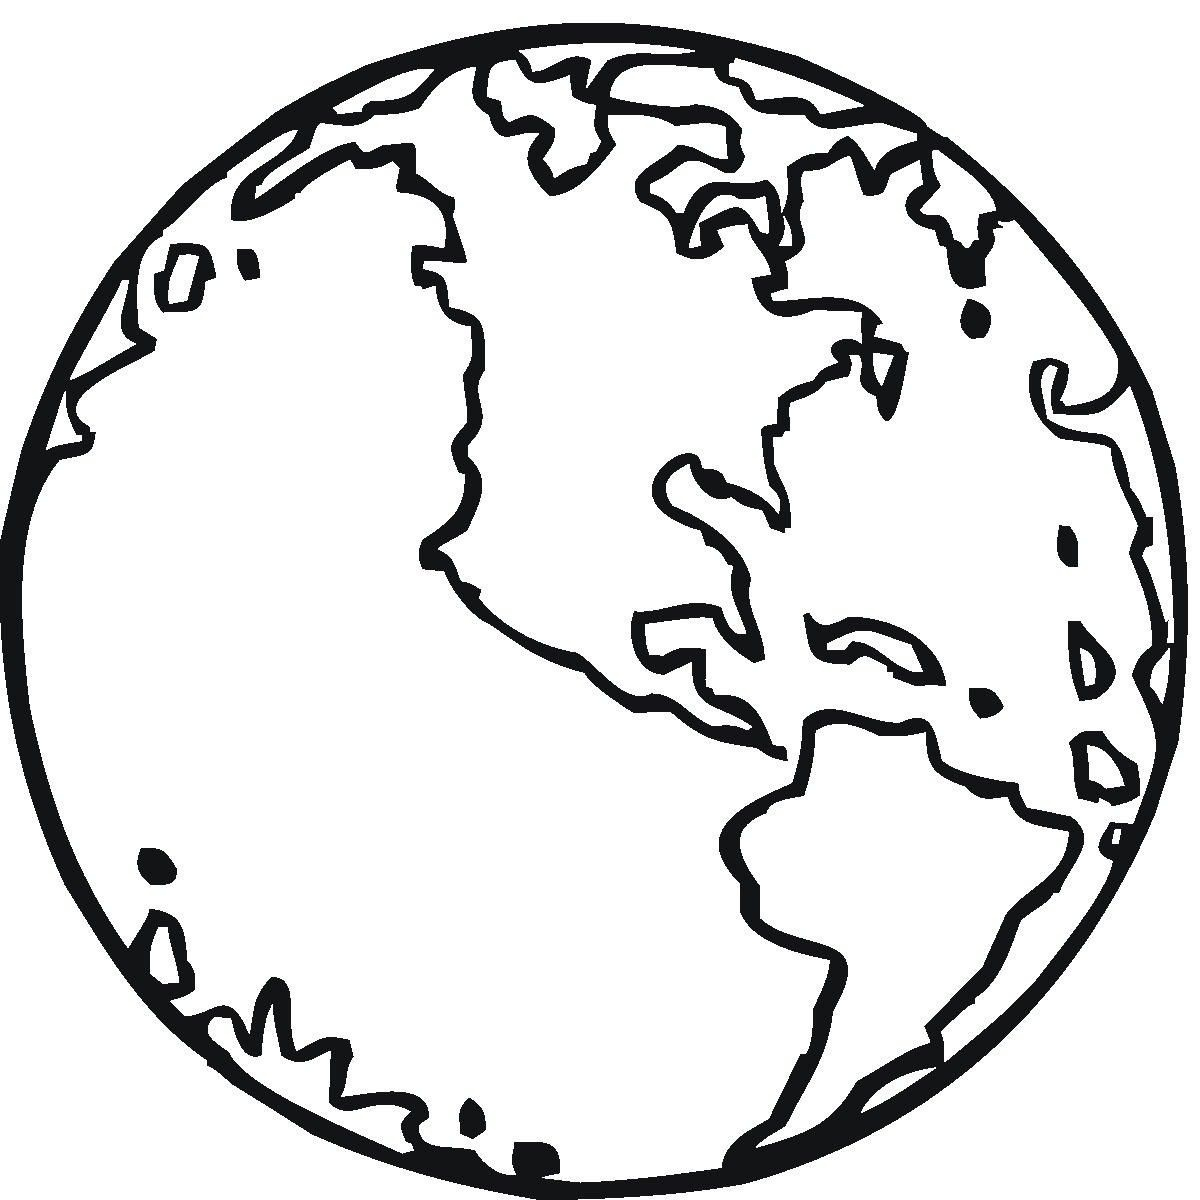 Free Printable Earth Coloring Pages For Kids | Stuff | Earth - Free Printable Earth Pictures